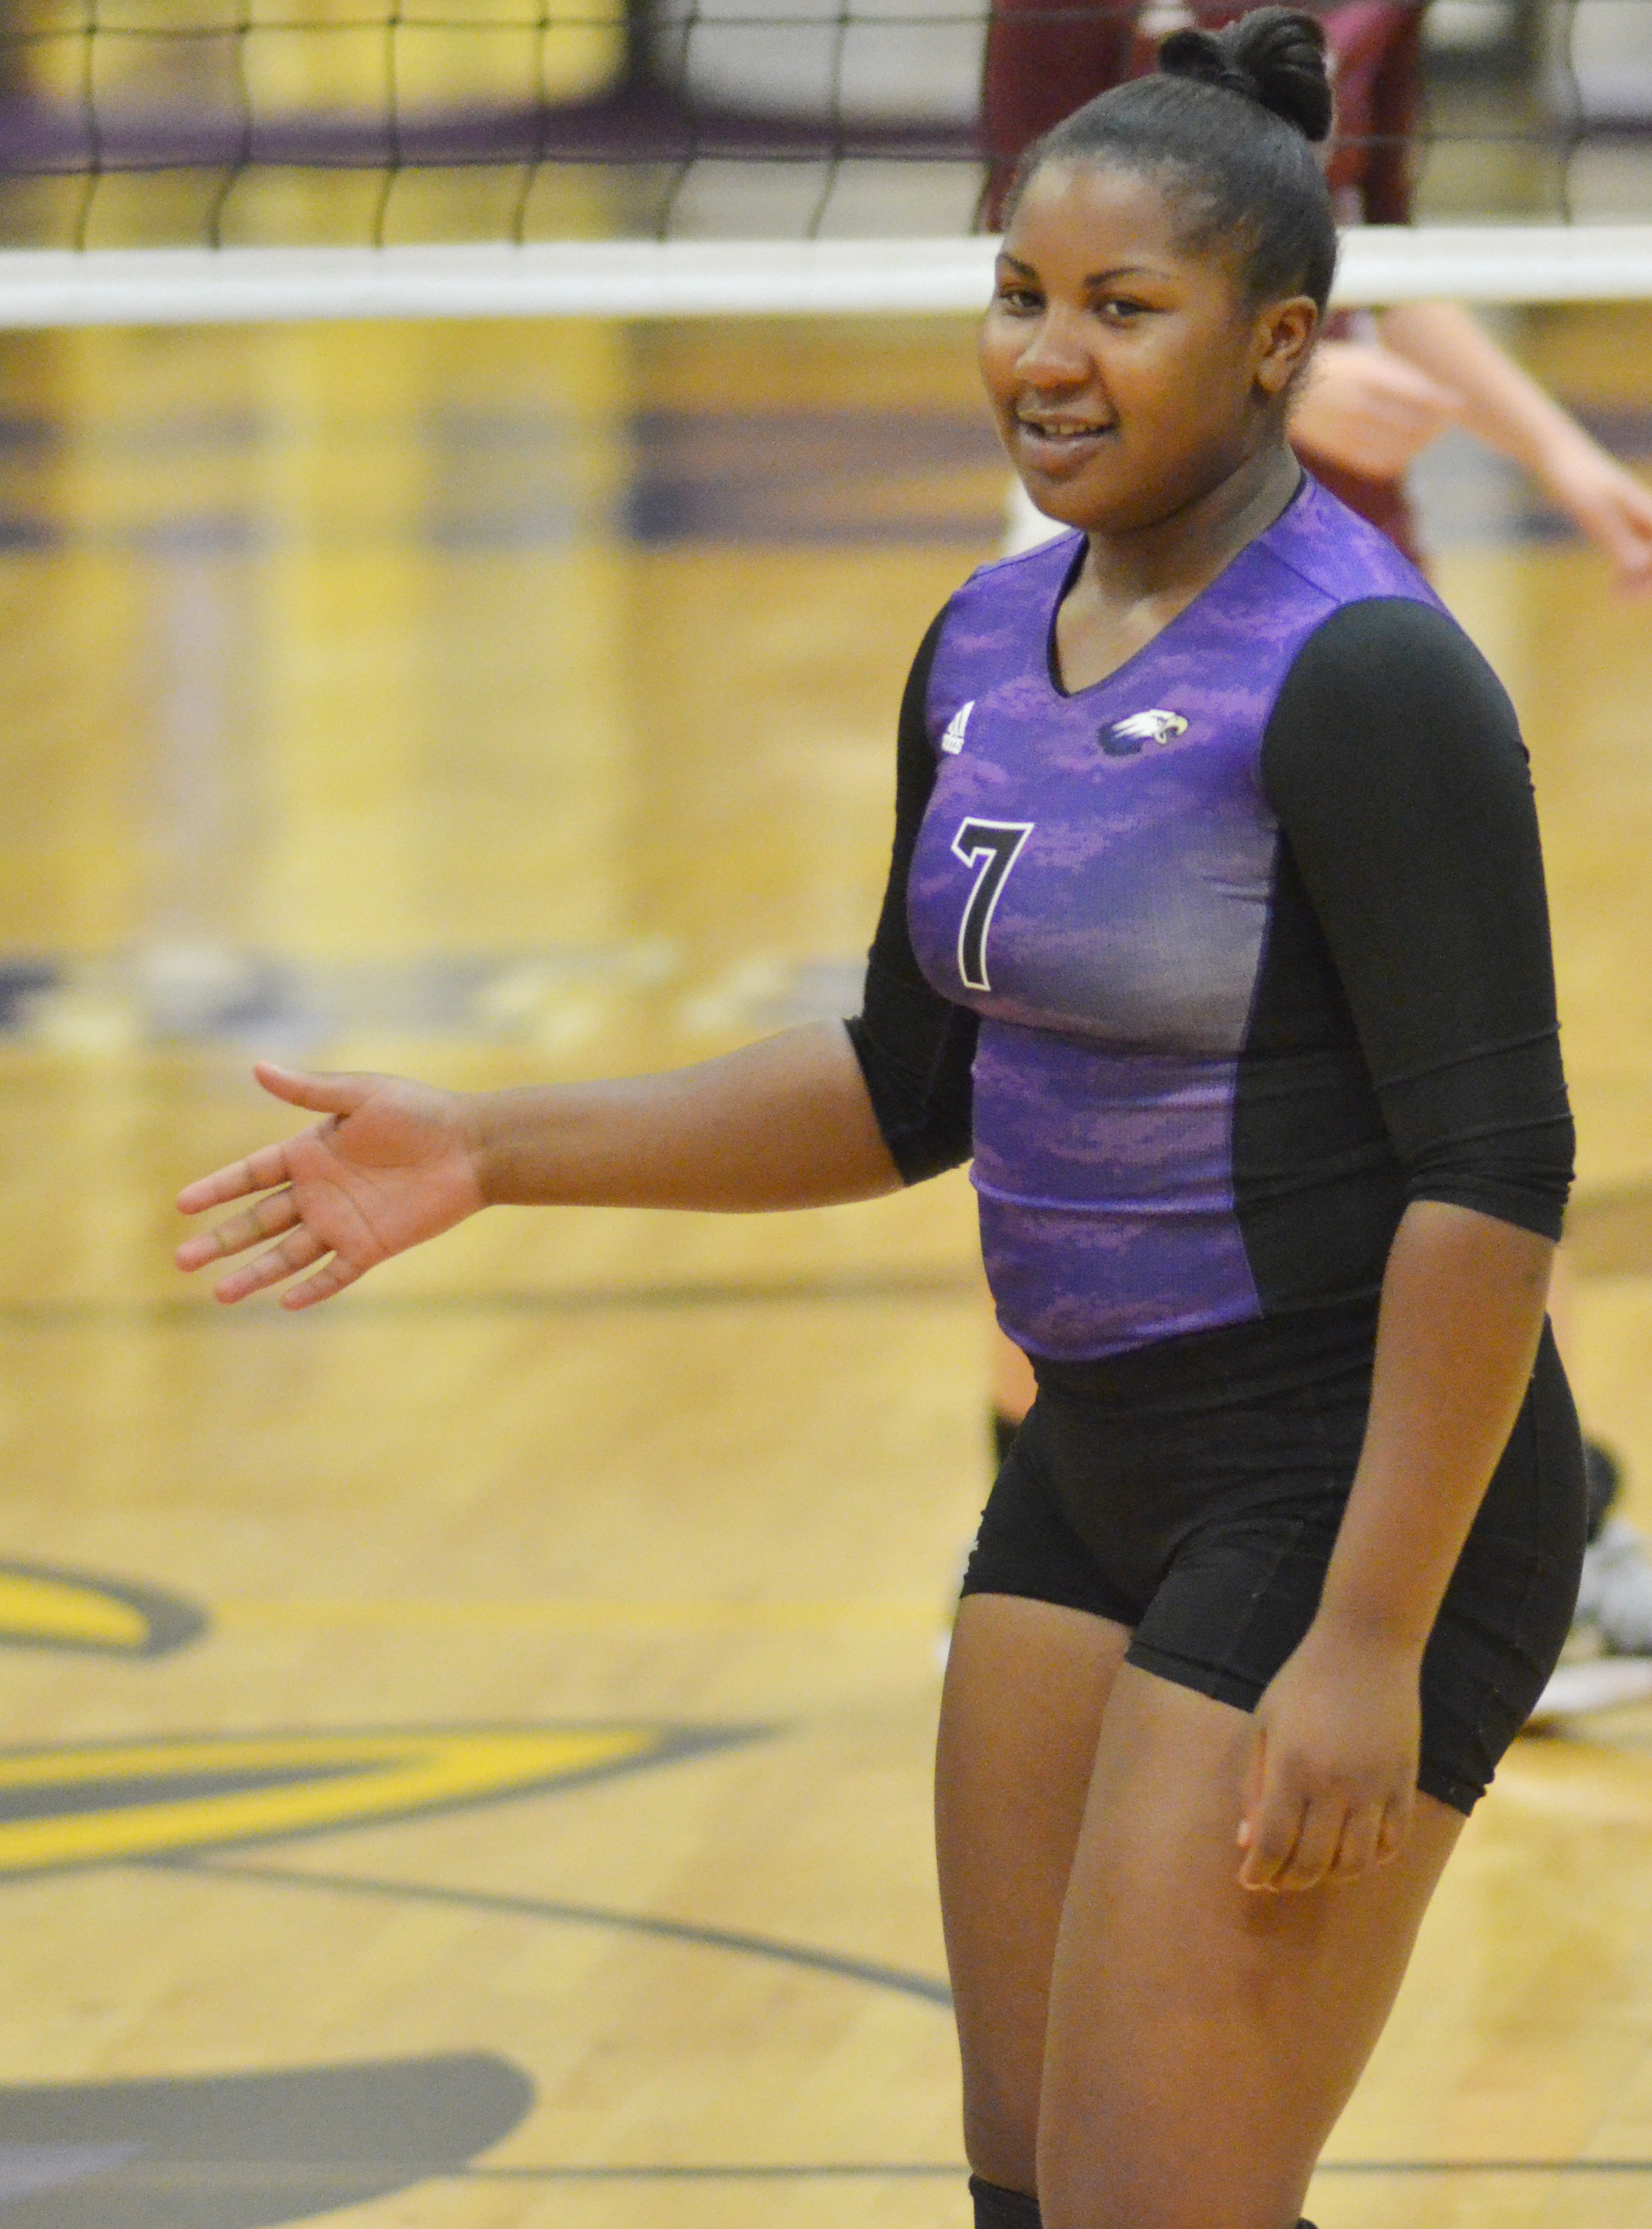 CHS senior Kiyah Barnett gets ready for the serve.